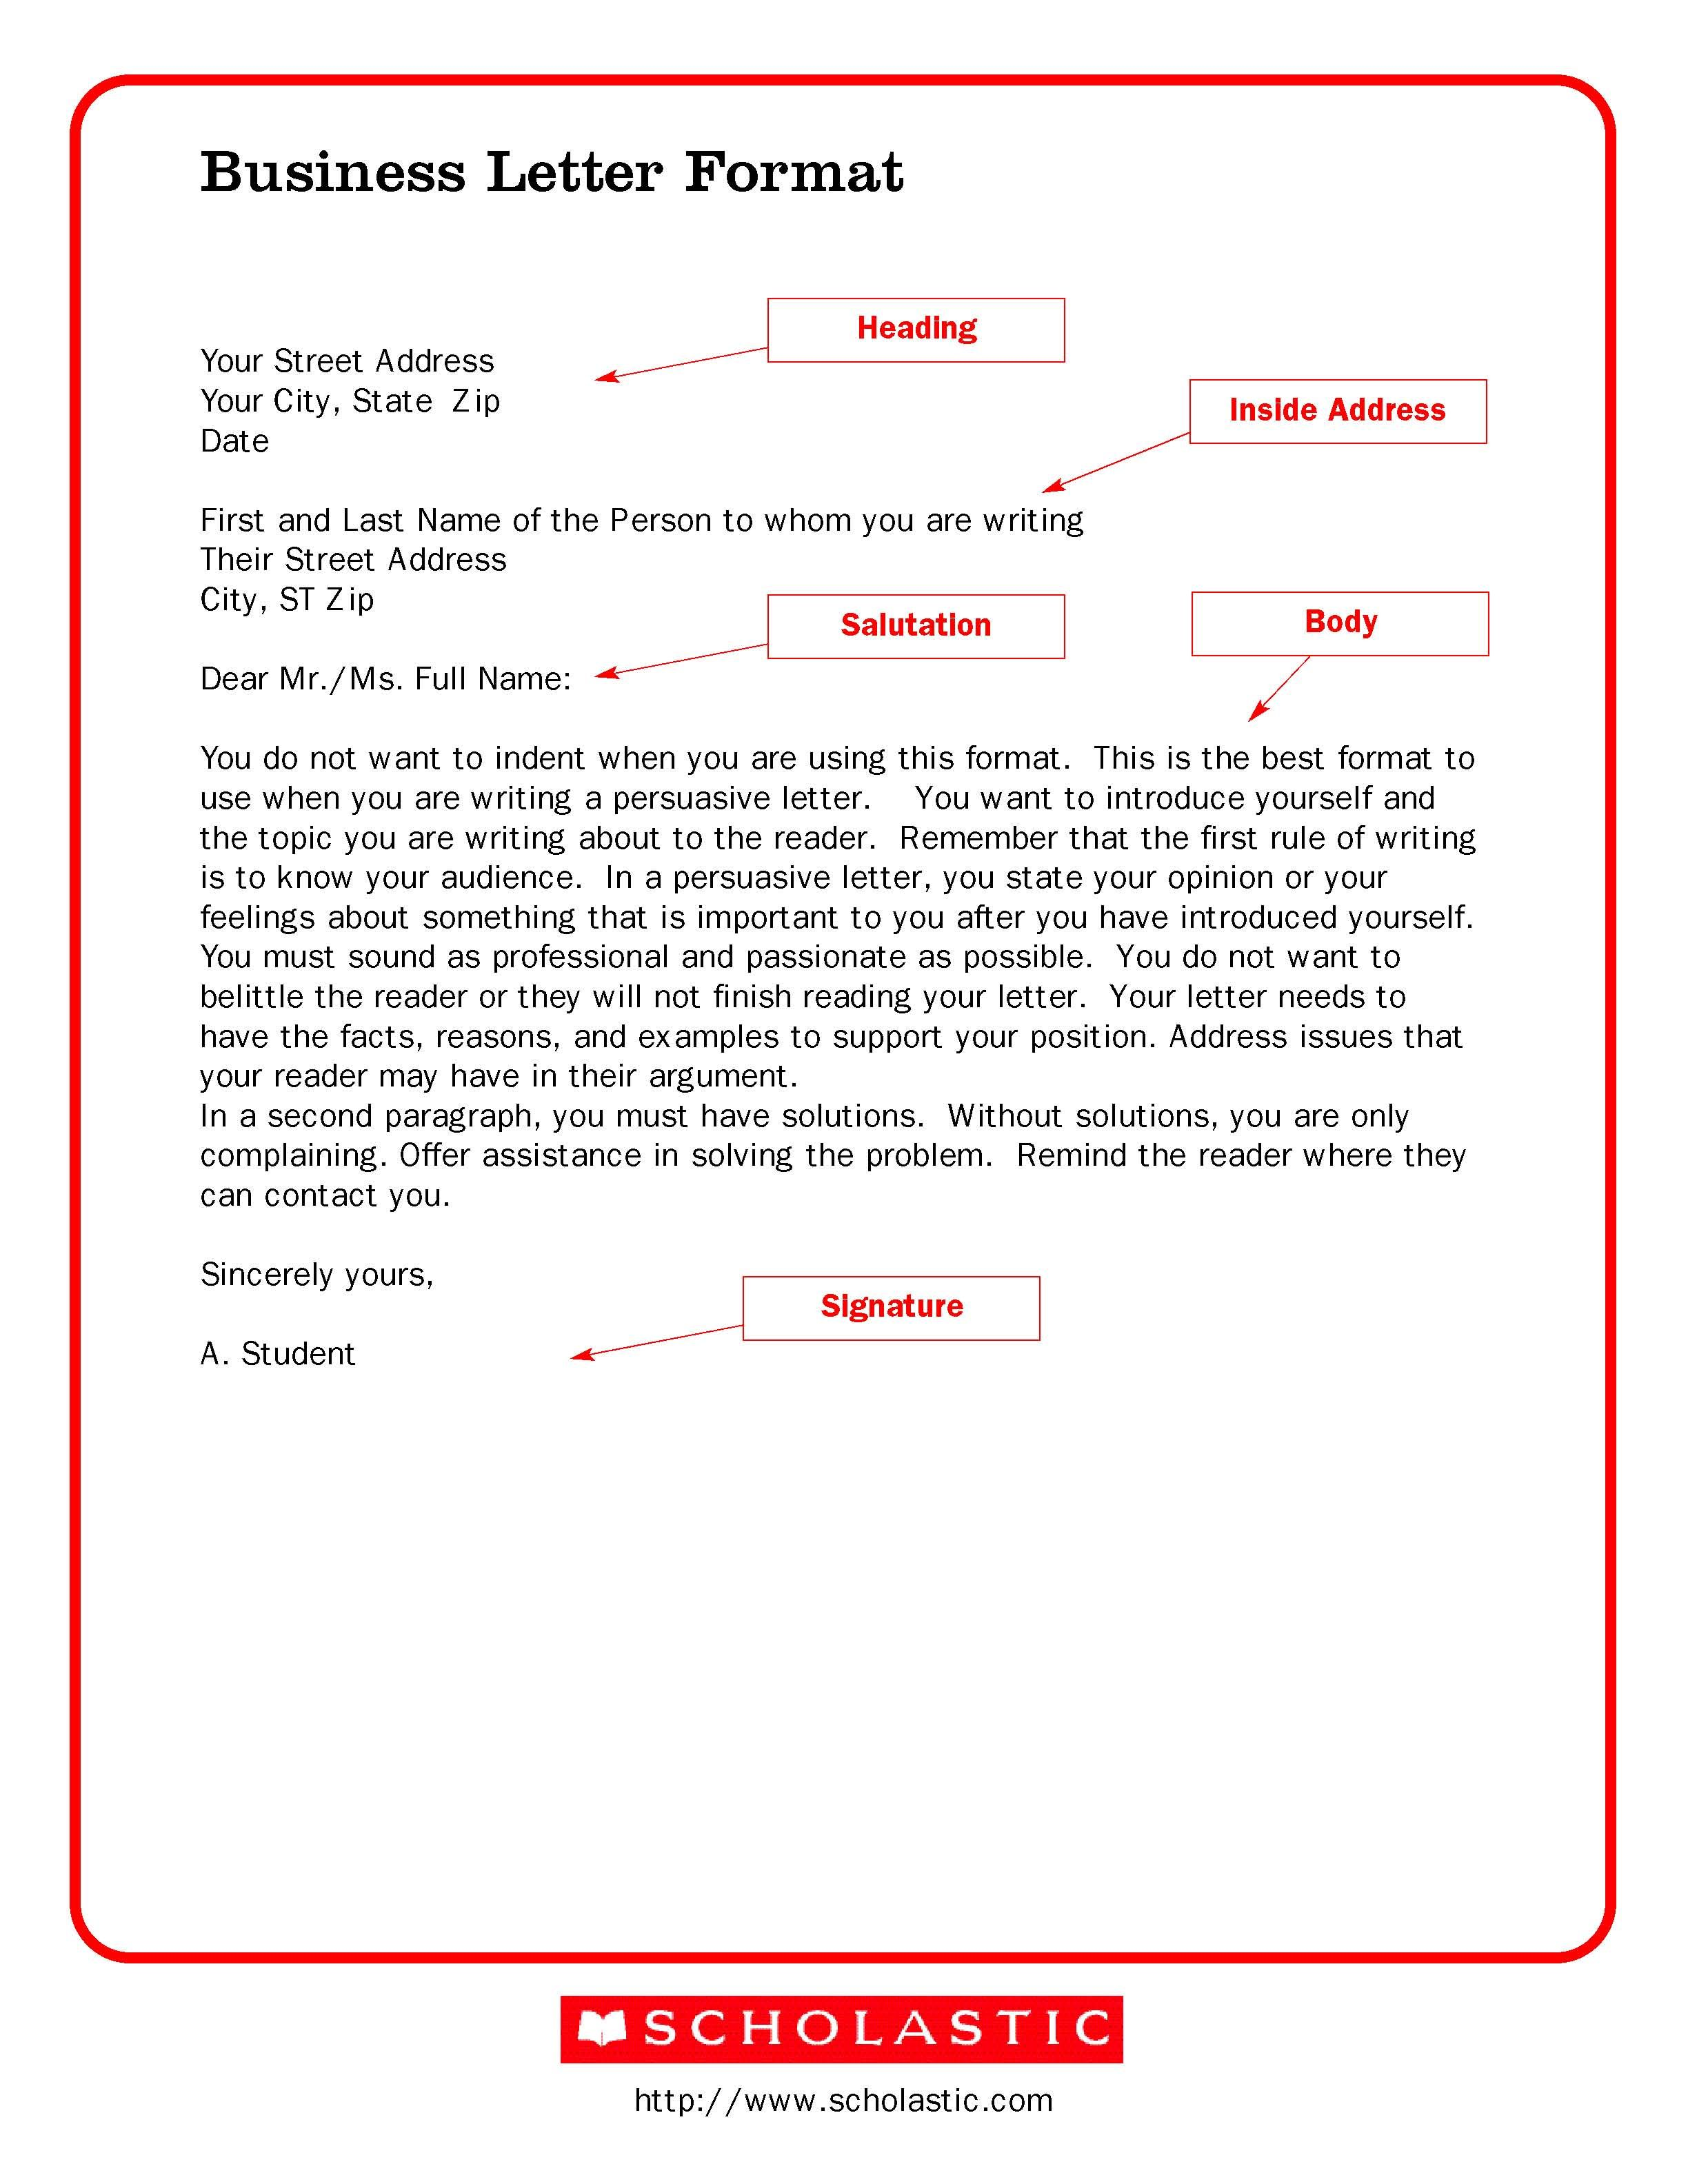 official business letter template   Hadi.palmex.co